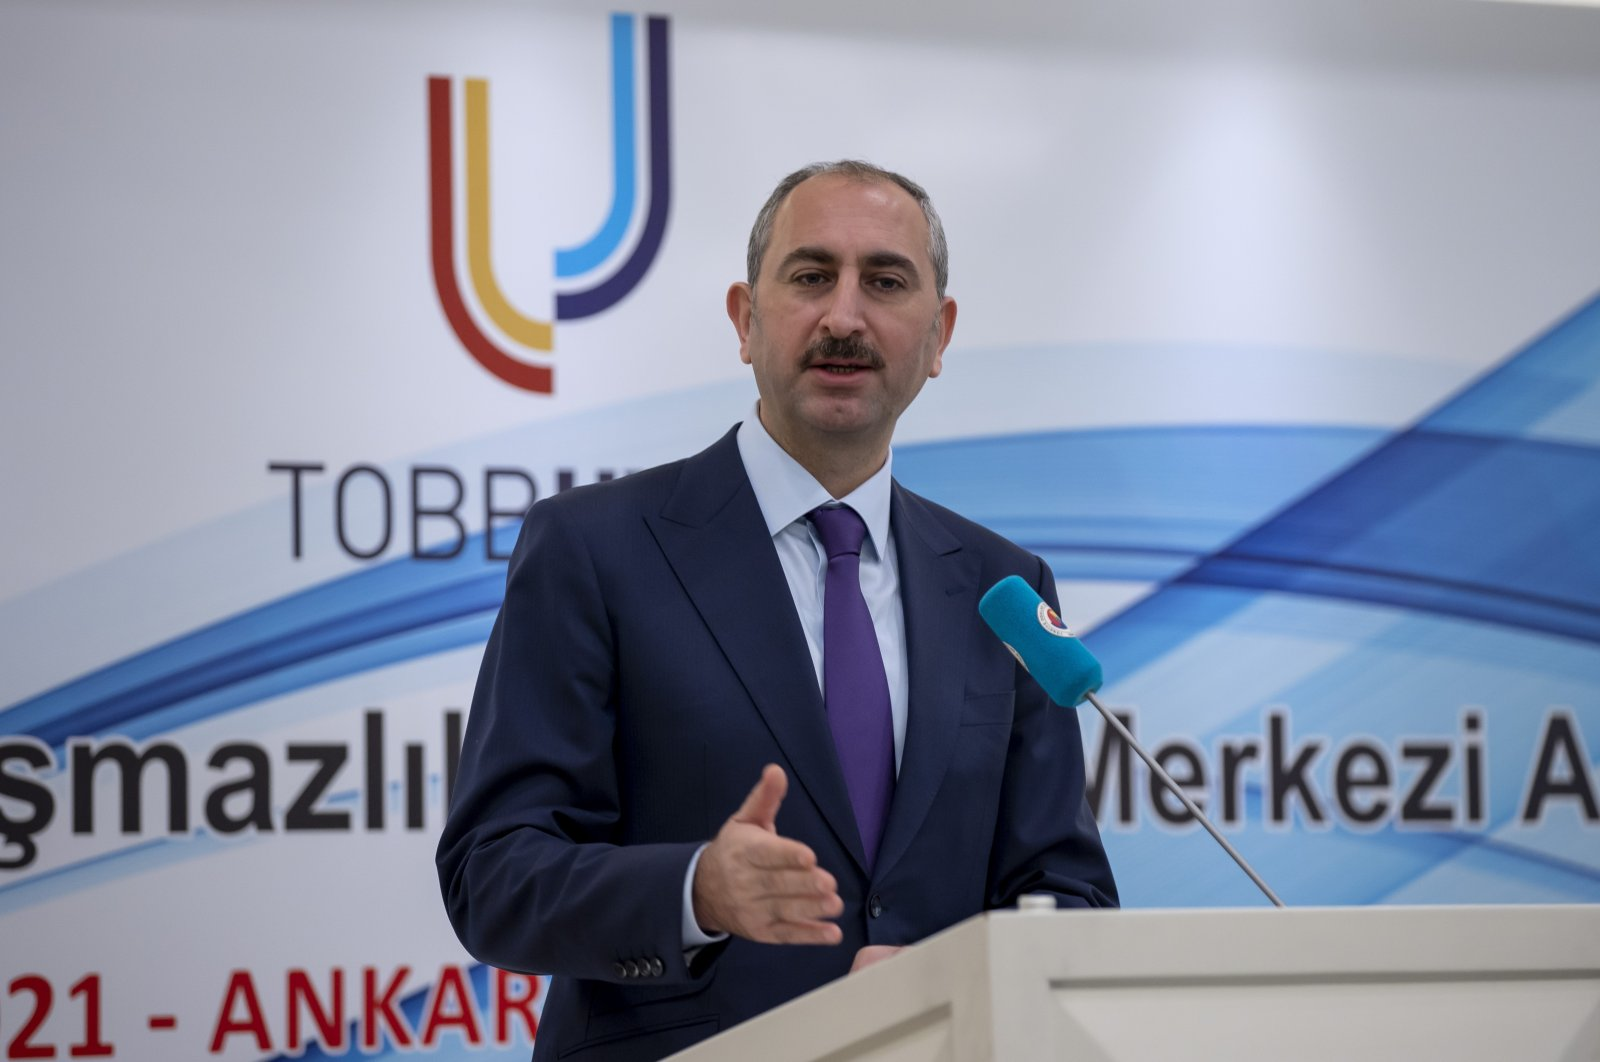 Justice Minister Abdulhamit Gül speaks at an event organized by the Union of Chambers and Commodity Exchanges of Turkey (TOBB) in the capital Ankara, March 11, 2021. (AA Photo)